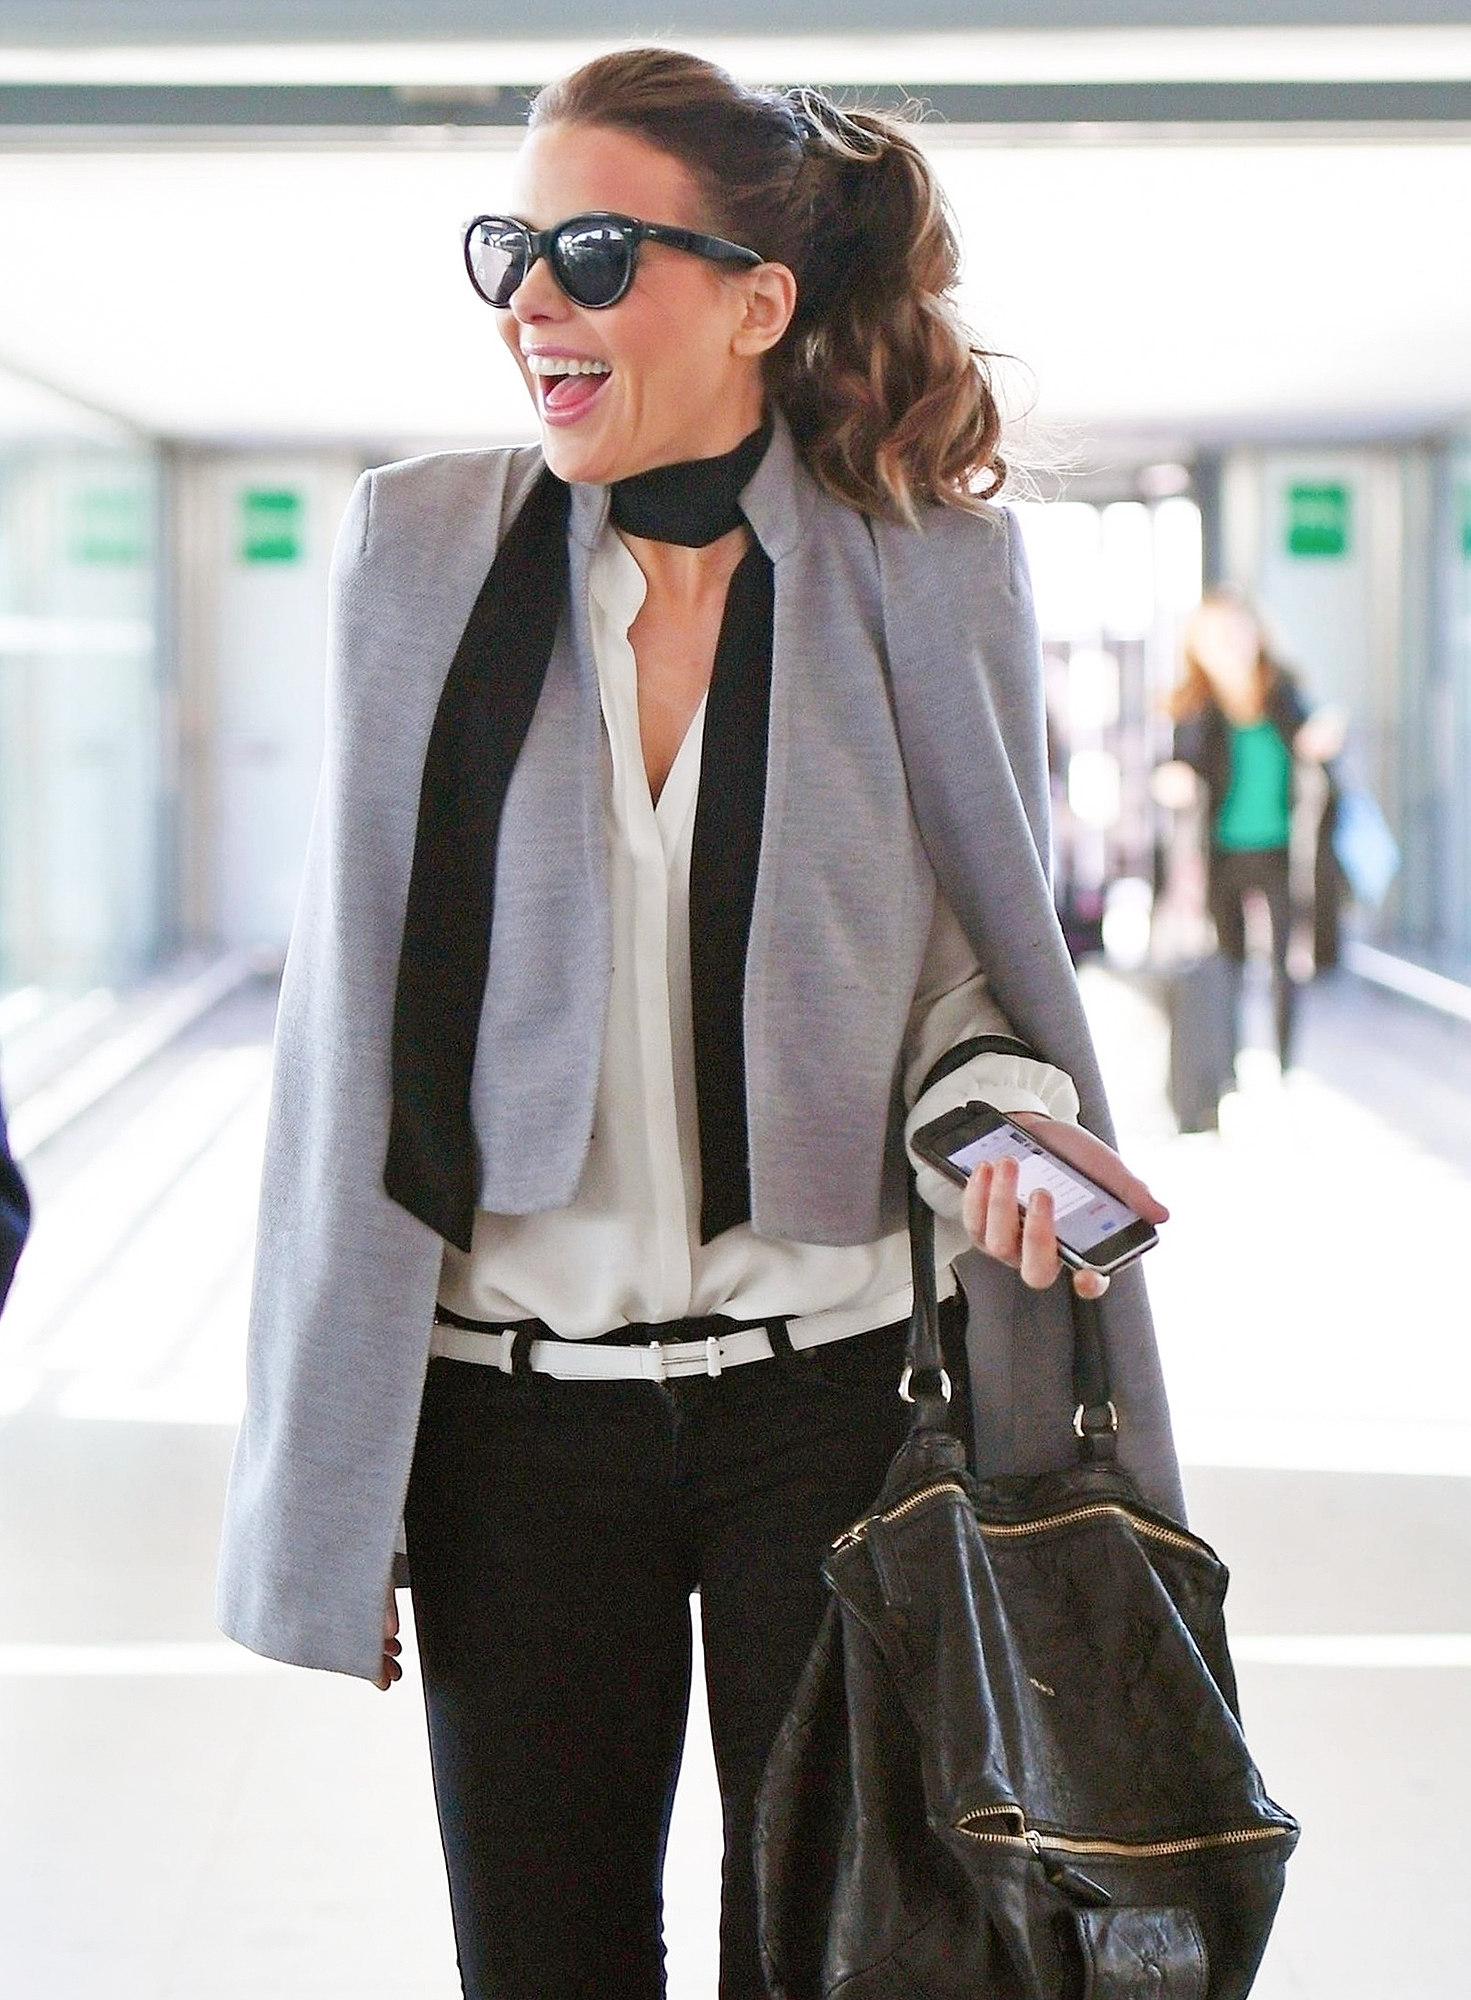 *EXCLUSIVE* Kate Beckinsale looks stylish at Heathrow